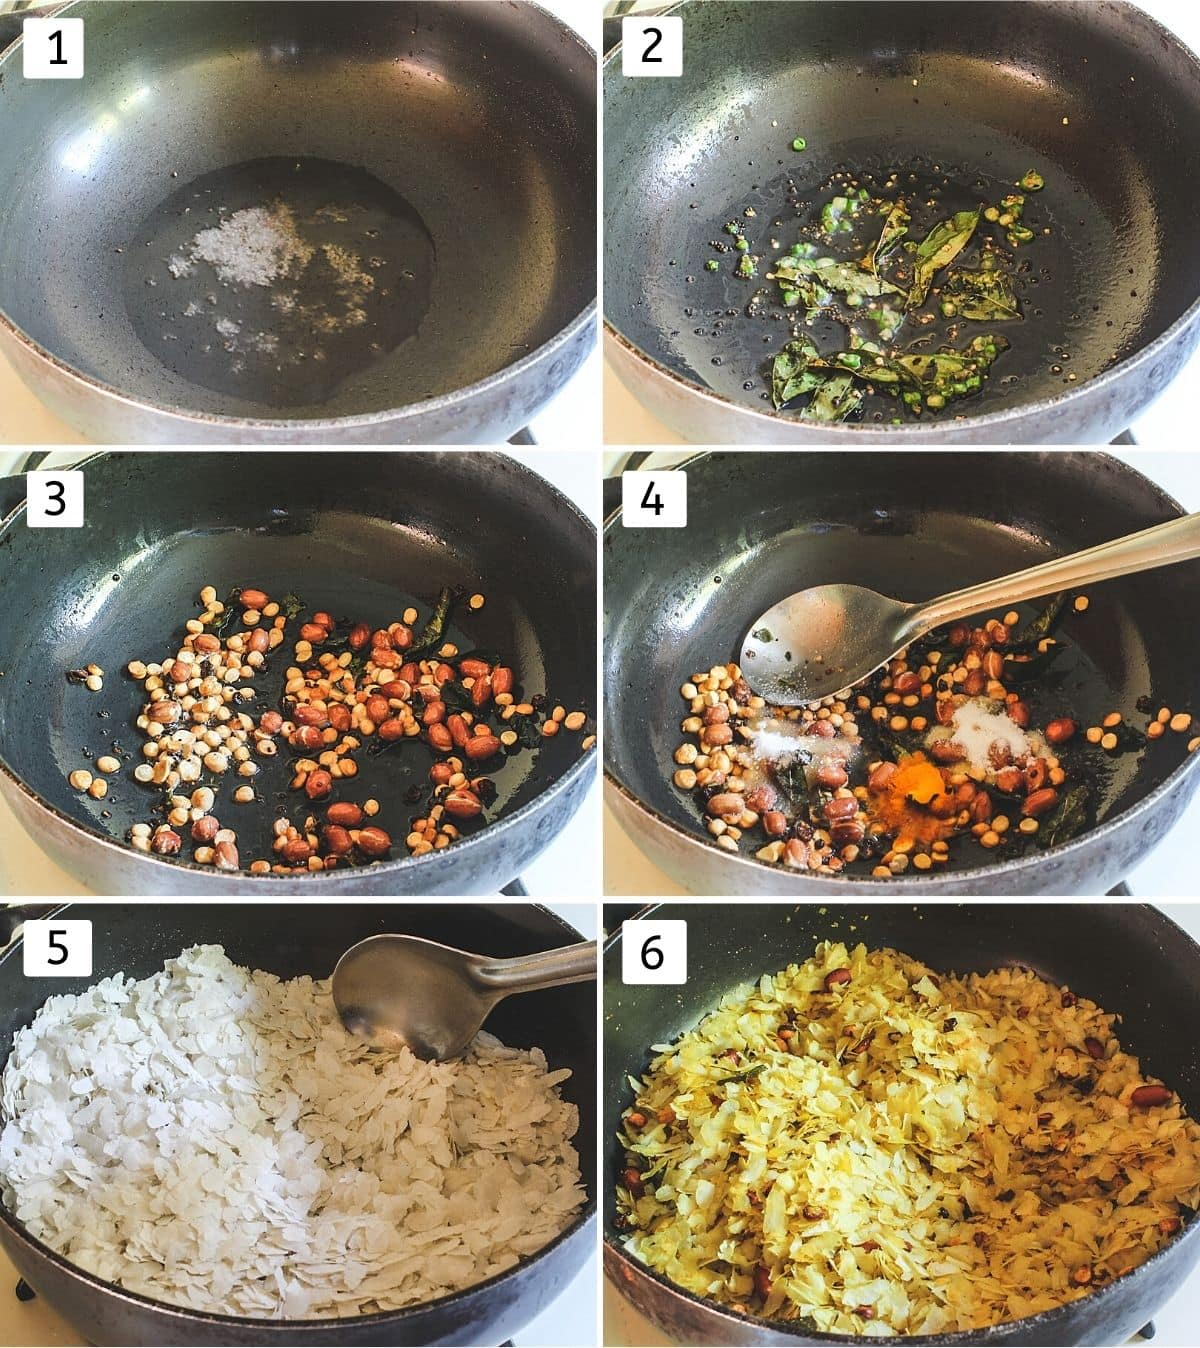 Collage of 6 steps showing mustard seeds in oil, chili & curry leaves, added nuts, adding spices, adding poha and mixed.